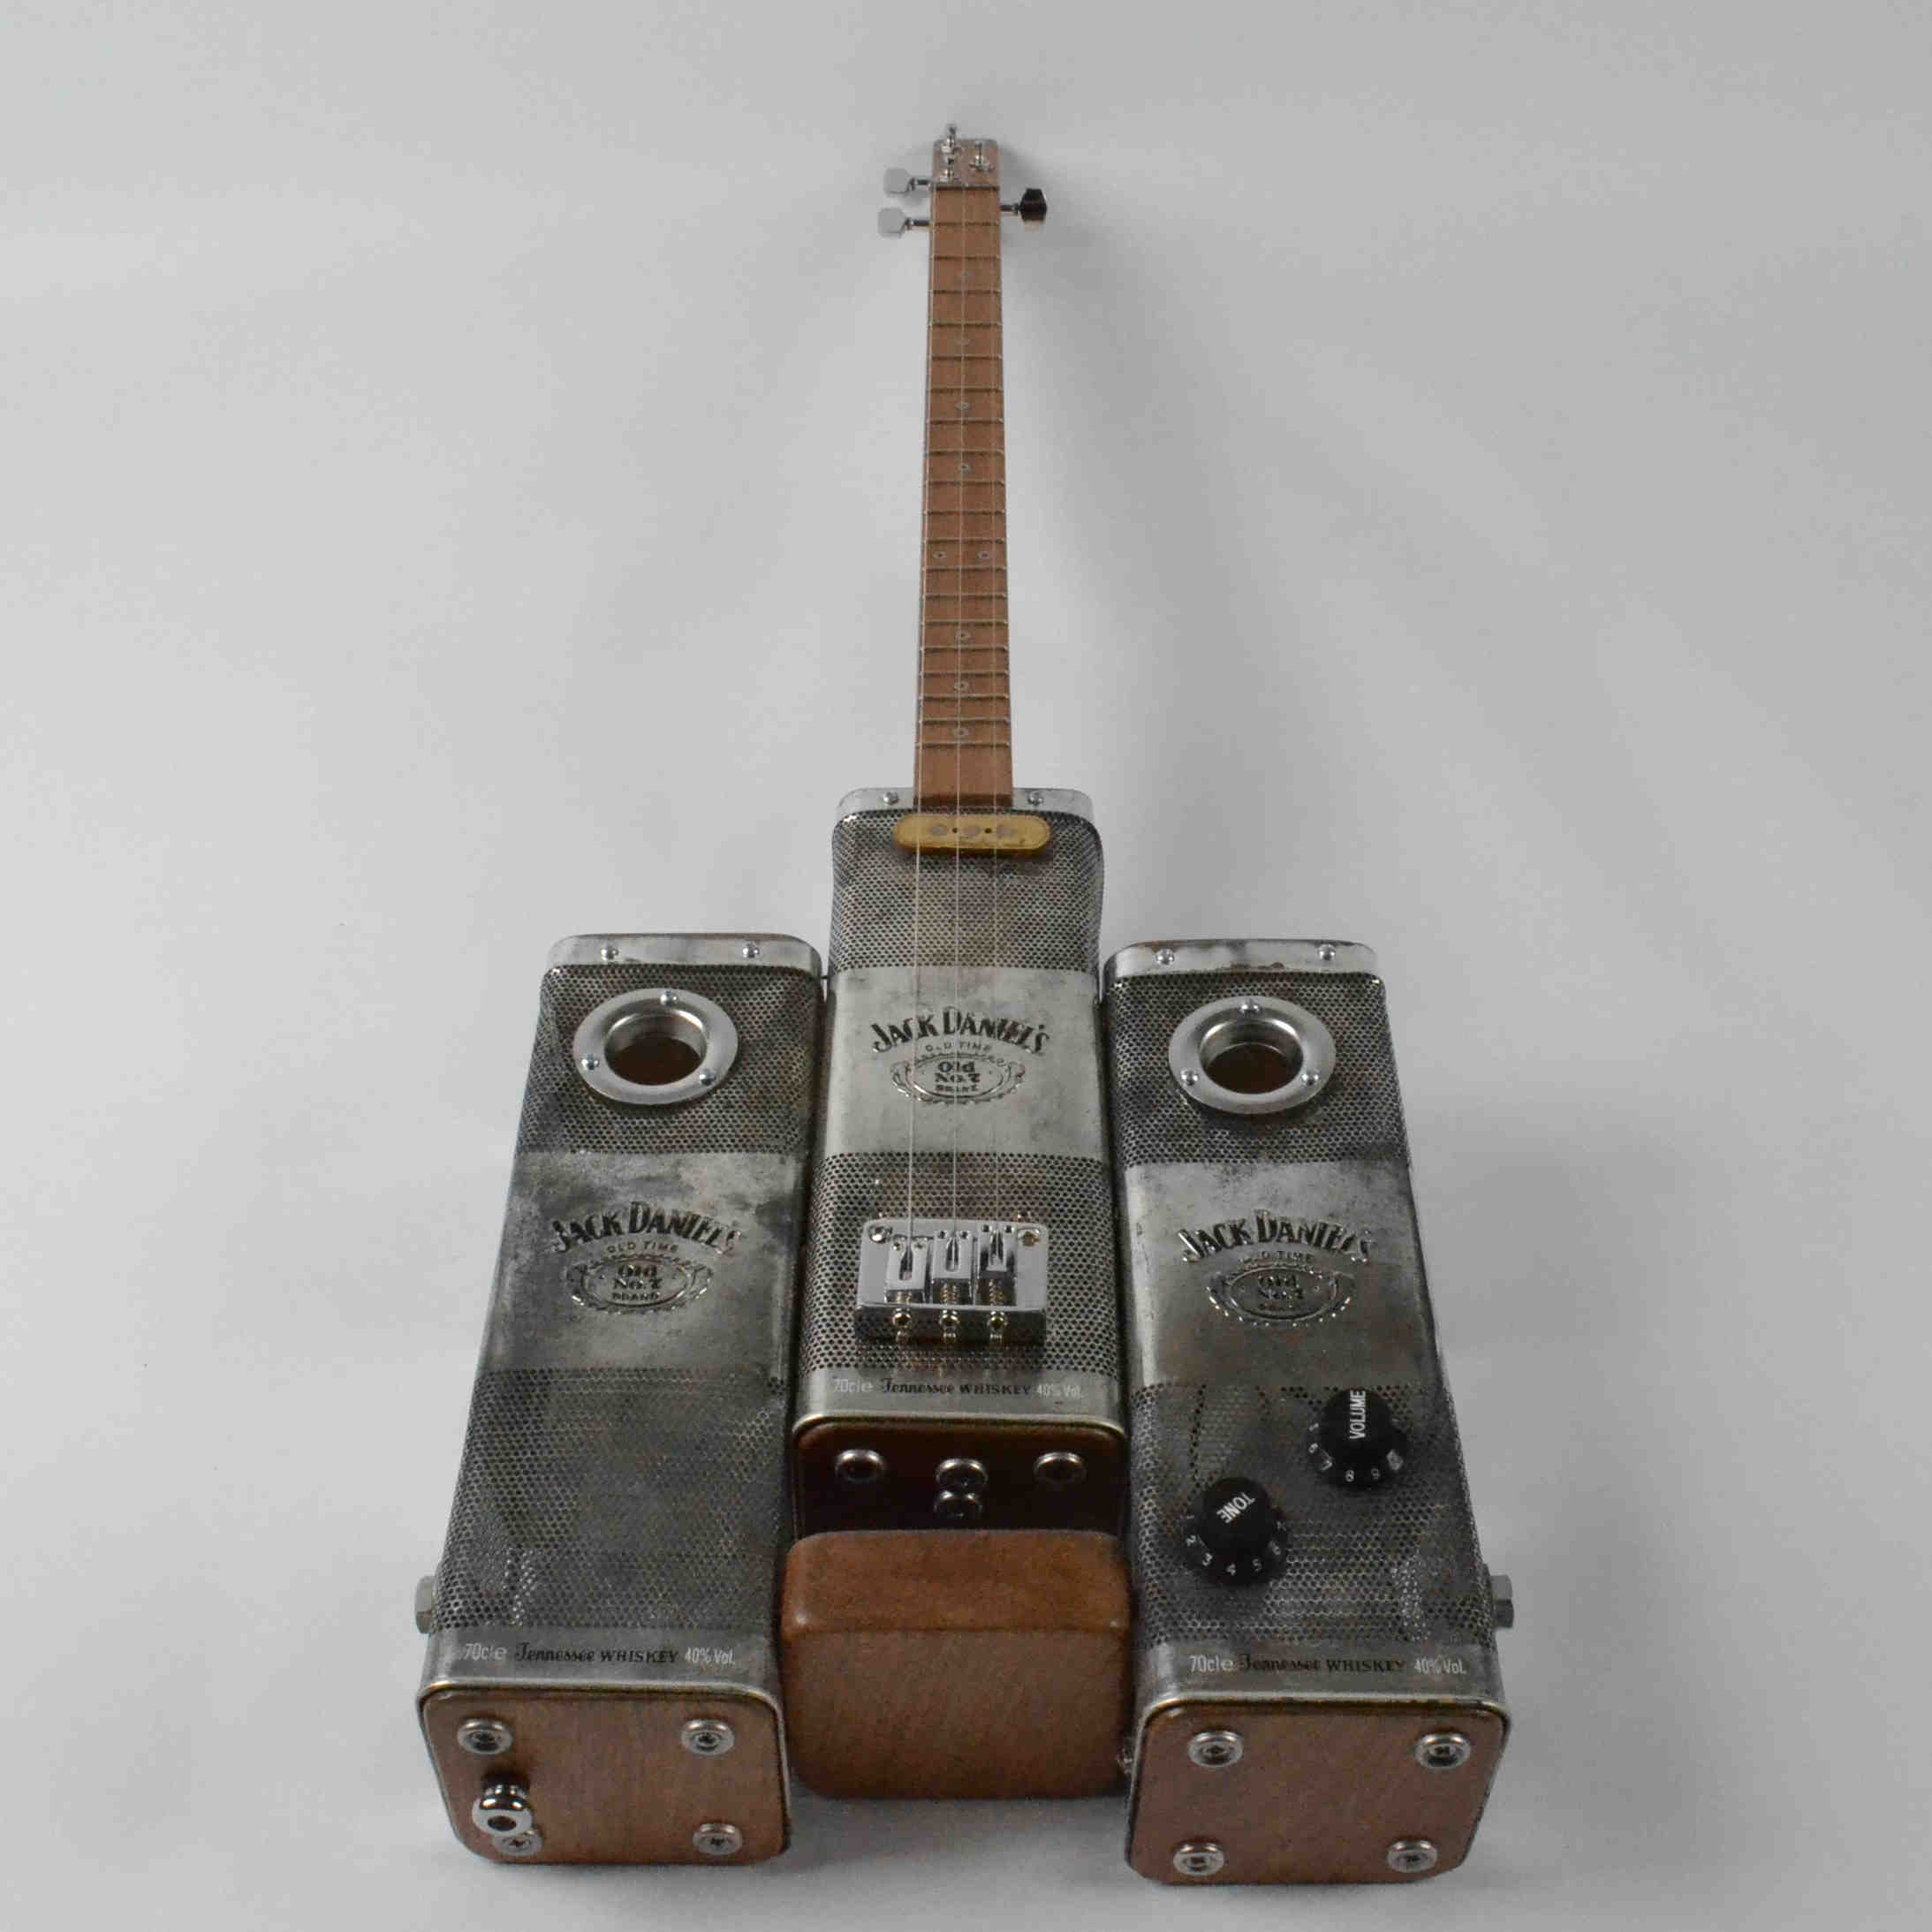 Jack Daniels Steam Punk Tin Guitar